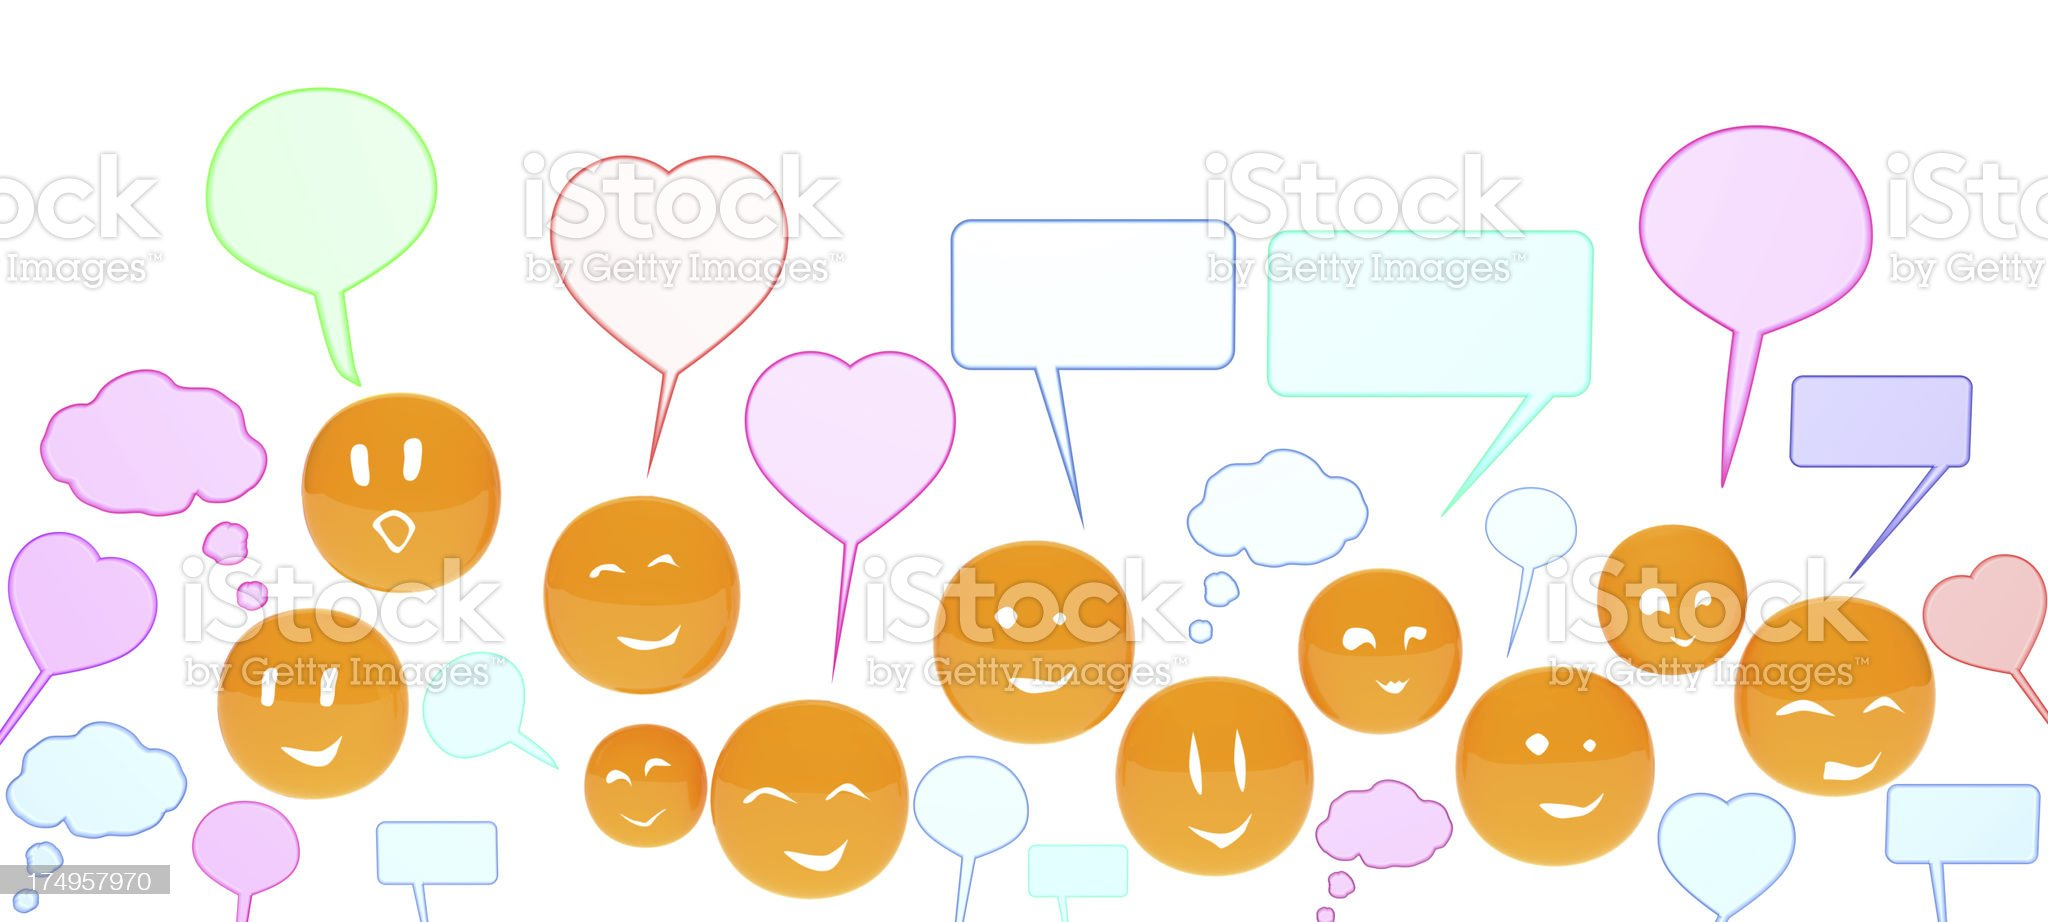 Social Network of people royalty-free stock vector art